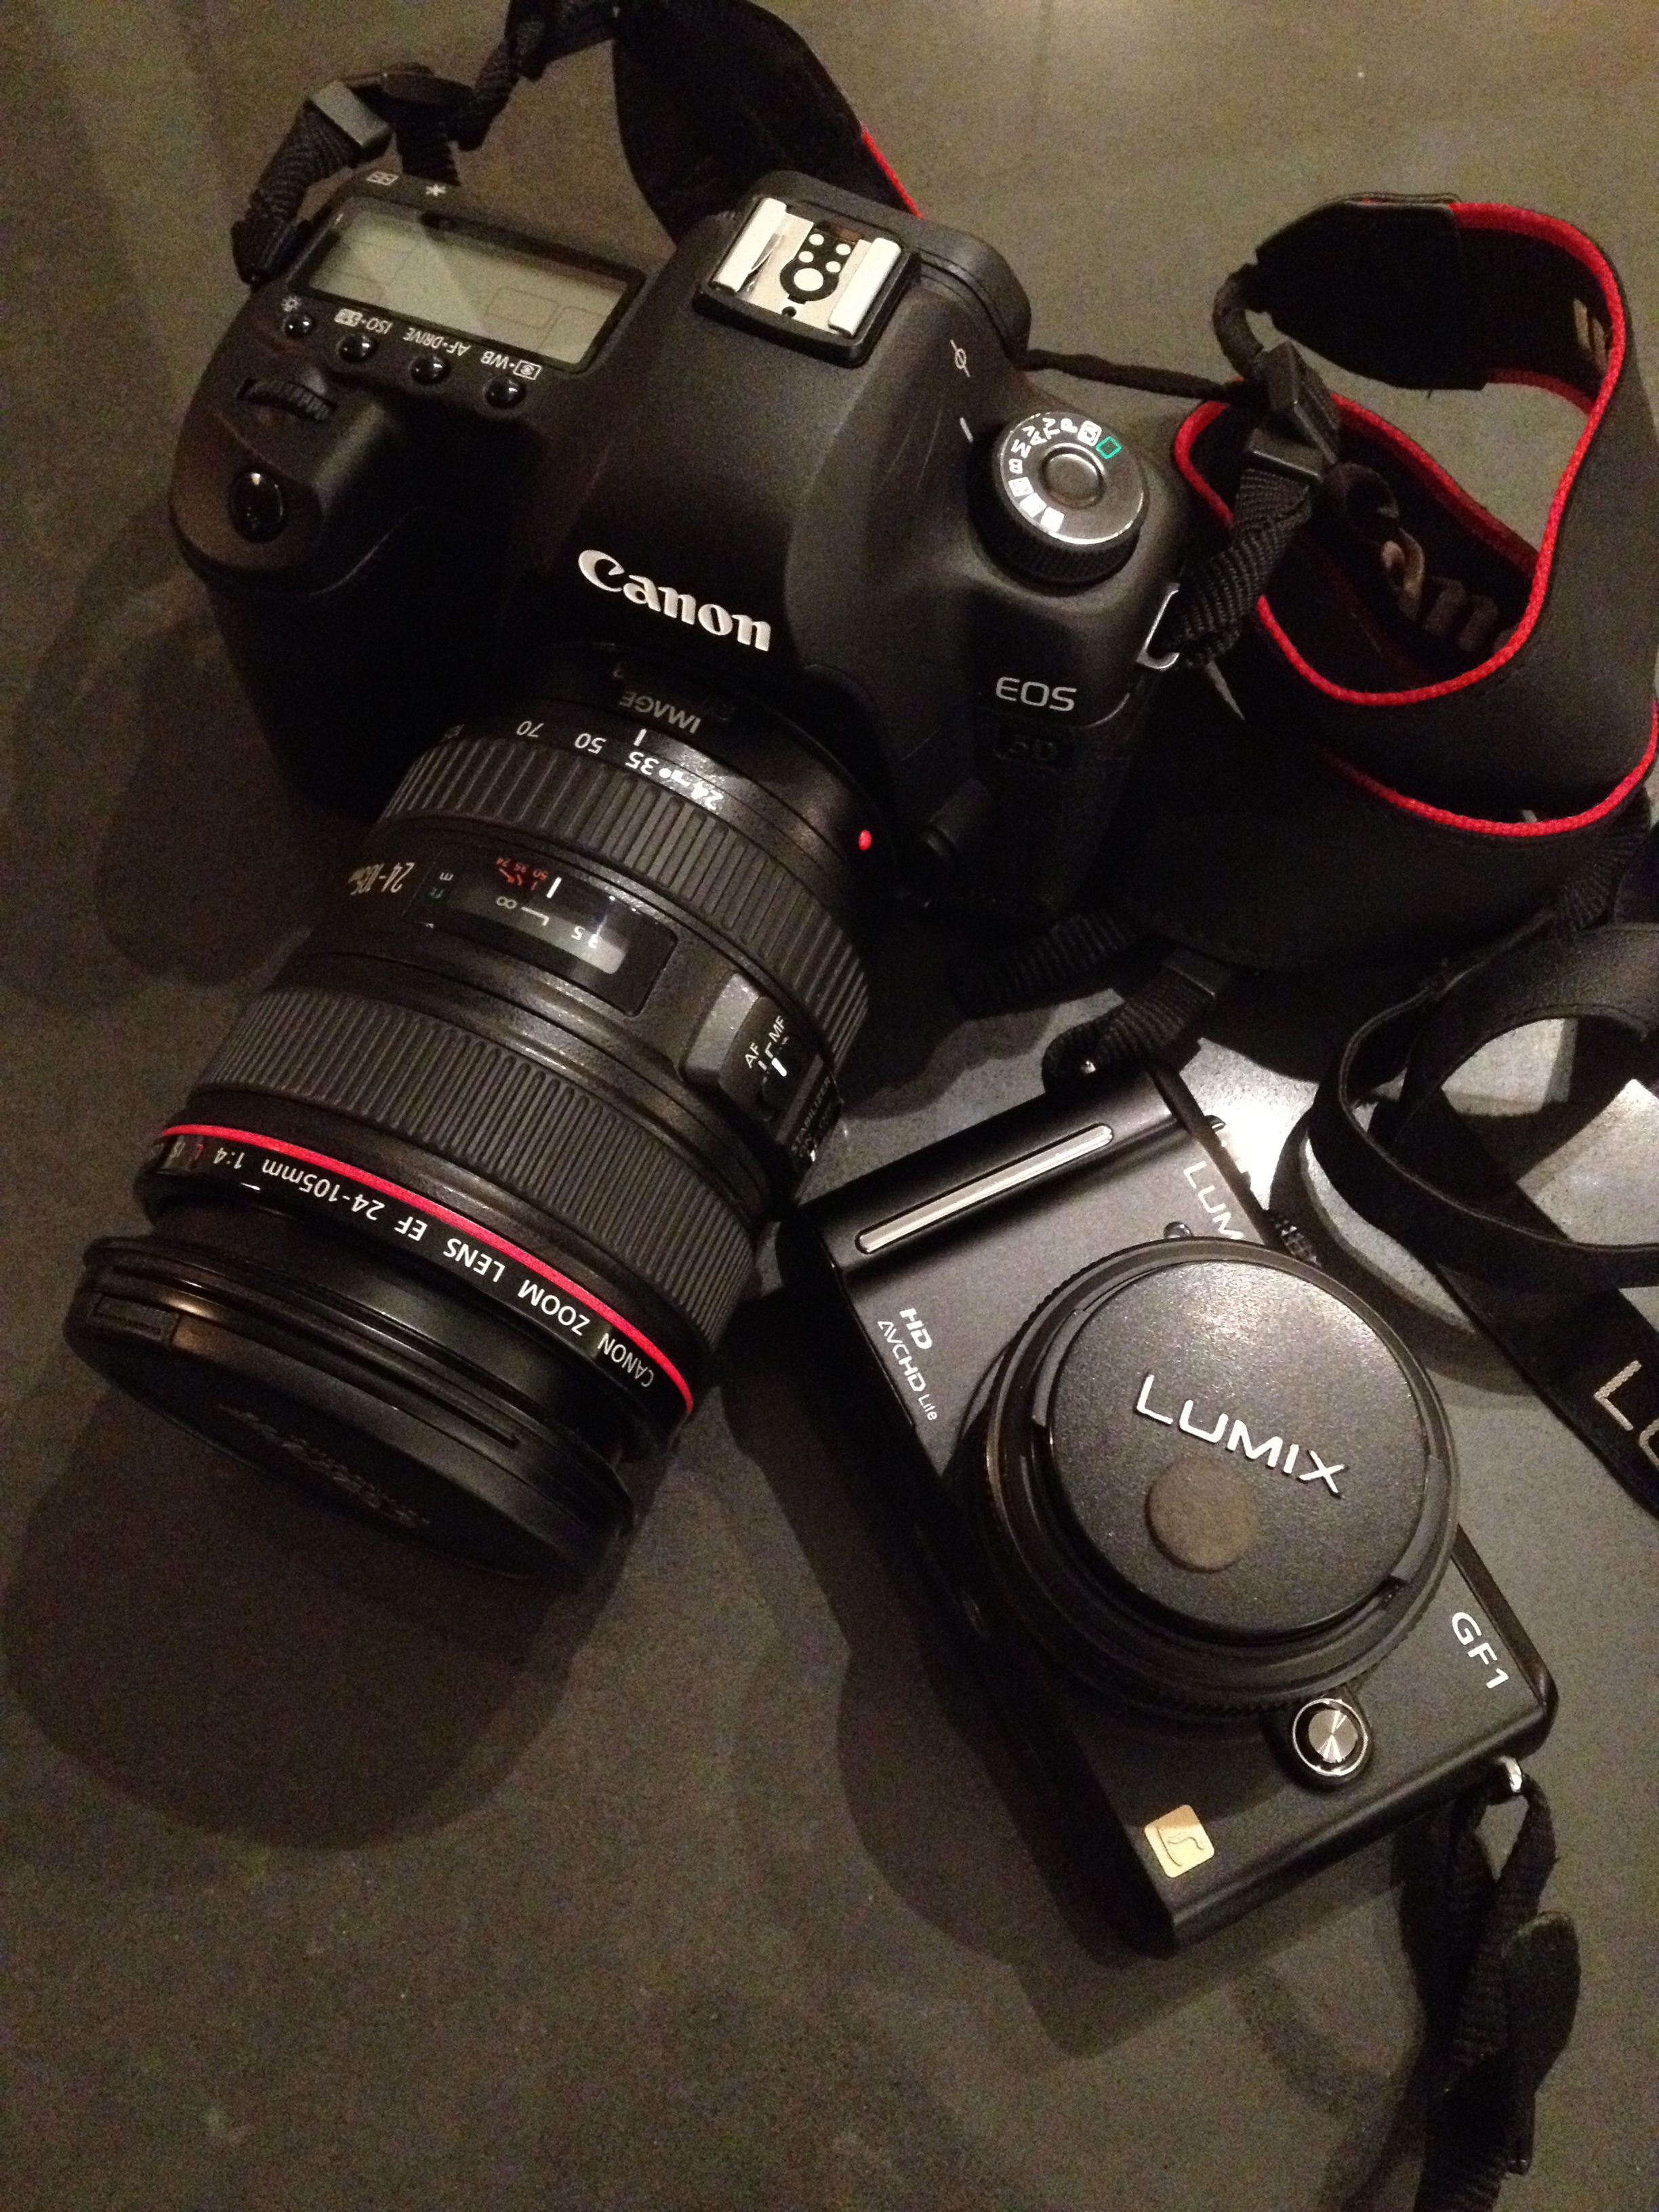 Canon 5D Mark II with a 24 -105L lens and my Panasonic GF1 with a 20 mm pancake.  ©Caroline Yung 2012